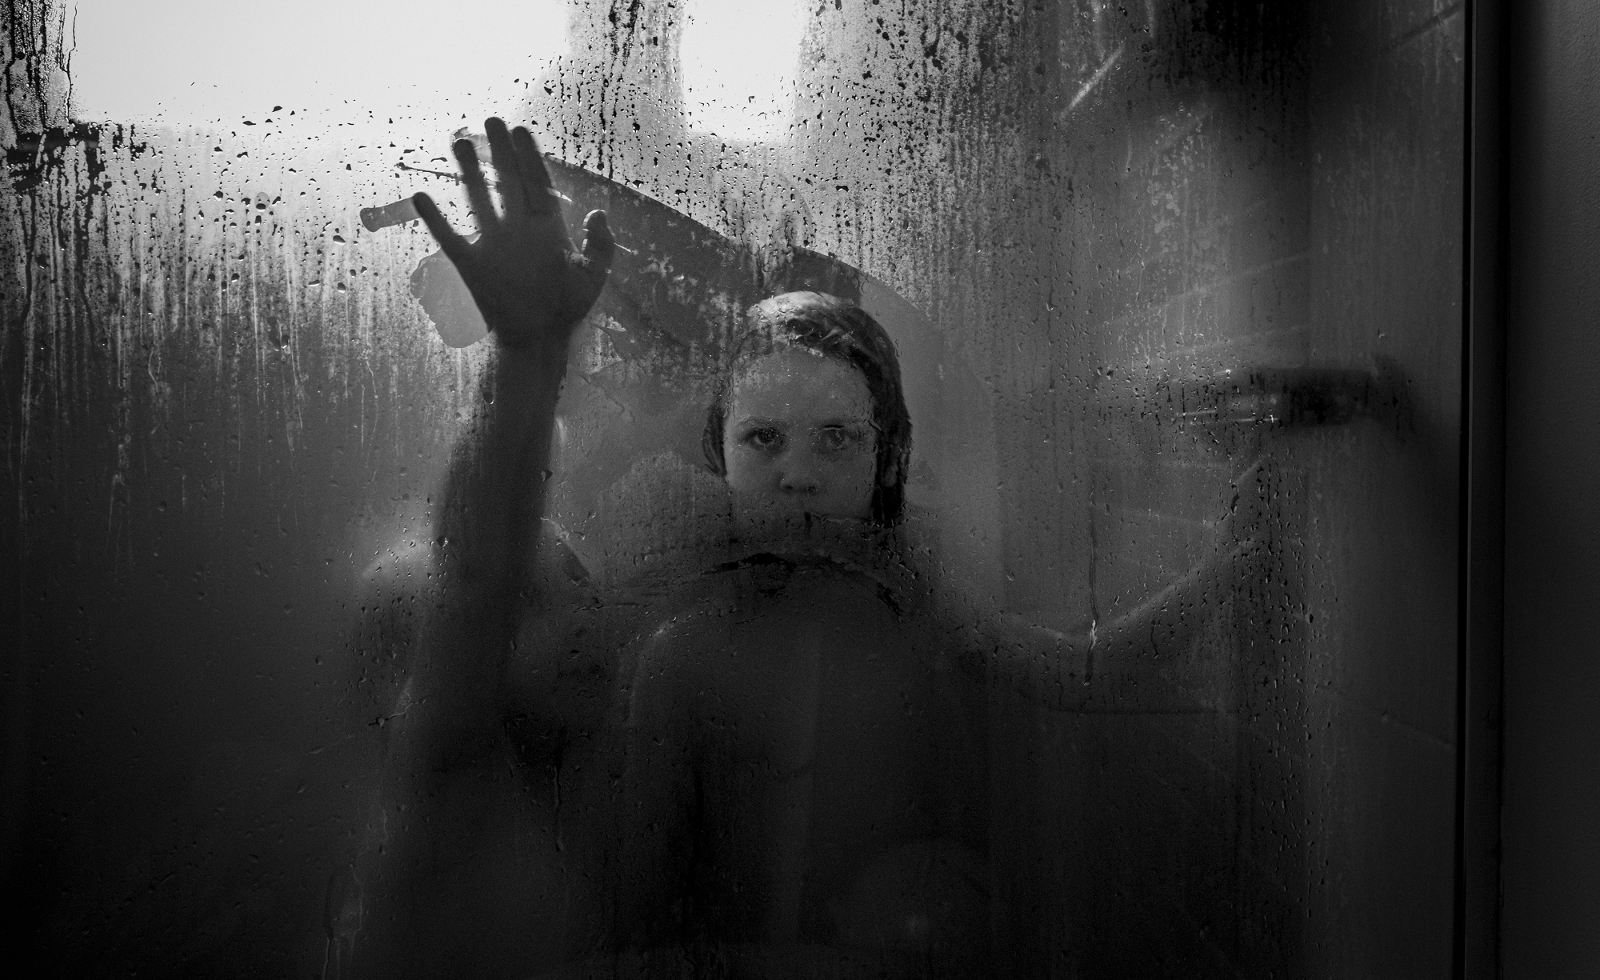 Black and white image of siblings writing on the shower glass